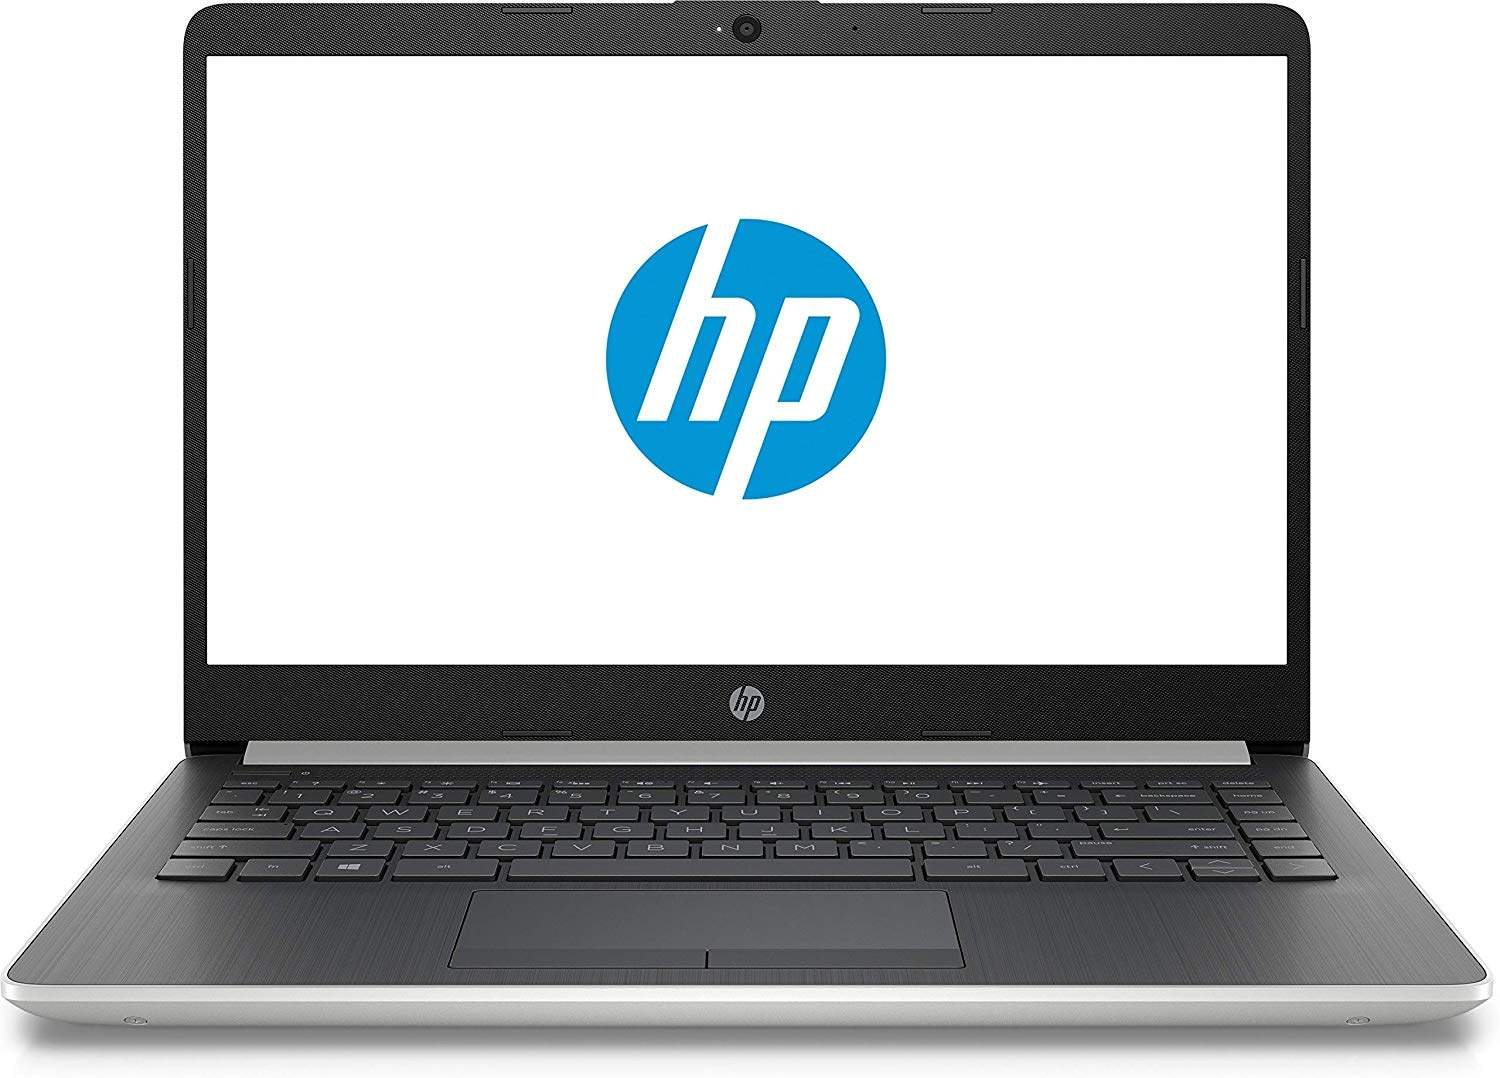 Buy Hp 14df Intel Core I3 8130u 4gb 128gb Ssd 14 Full Hd 1080p Wled Laptop Features Price Reviews Online In India Justdial